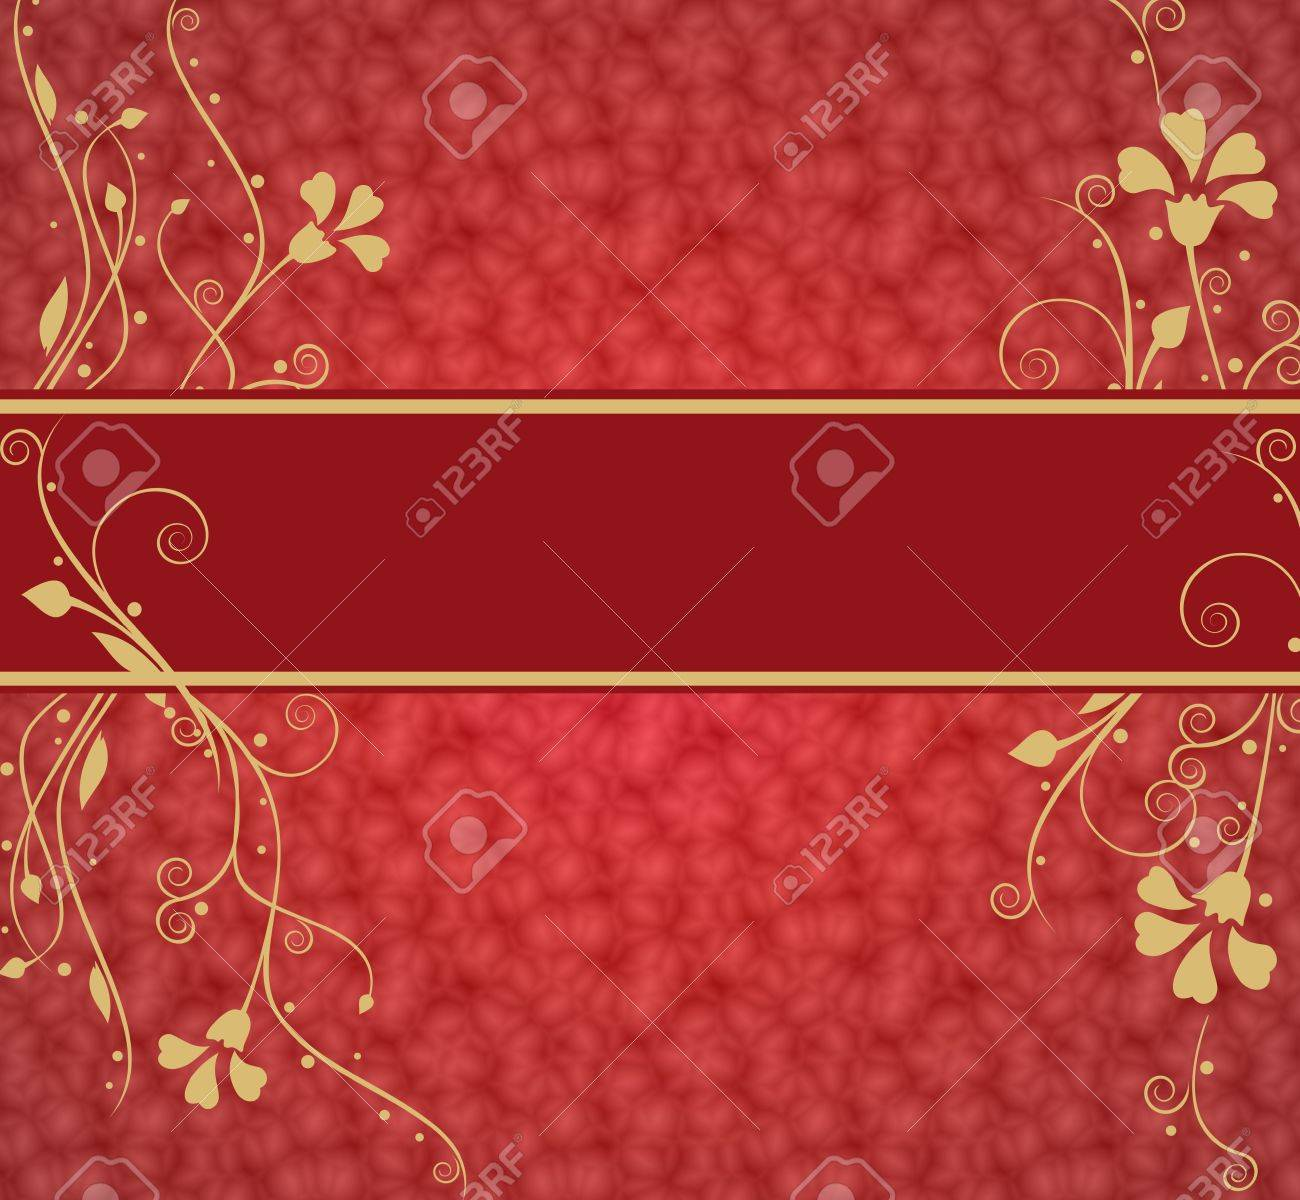 decorative beckground with place for text Stock Photo - 7363394